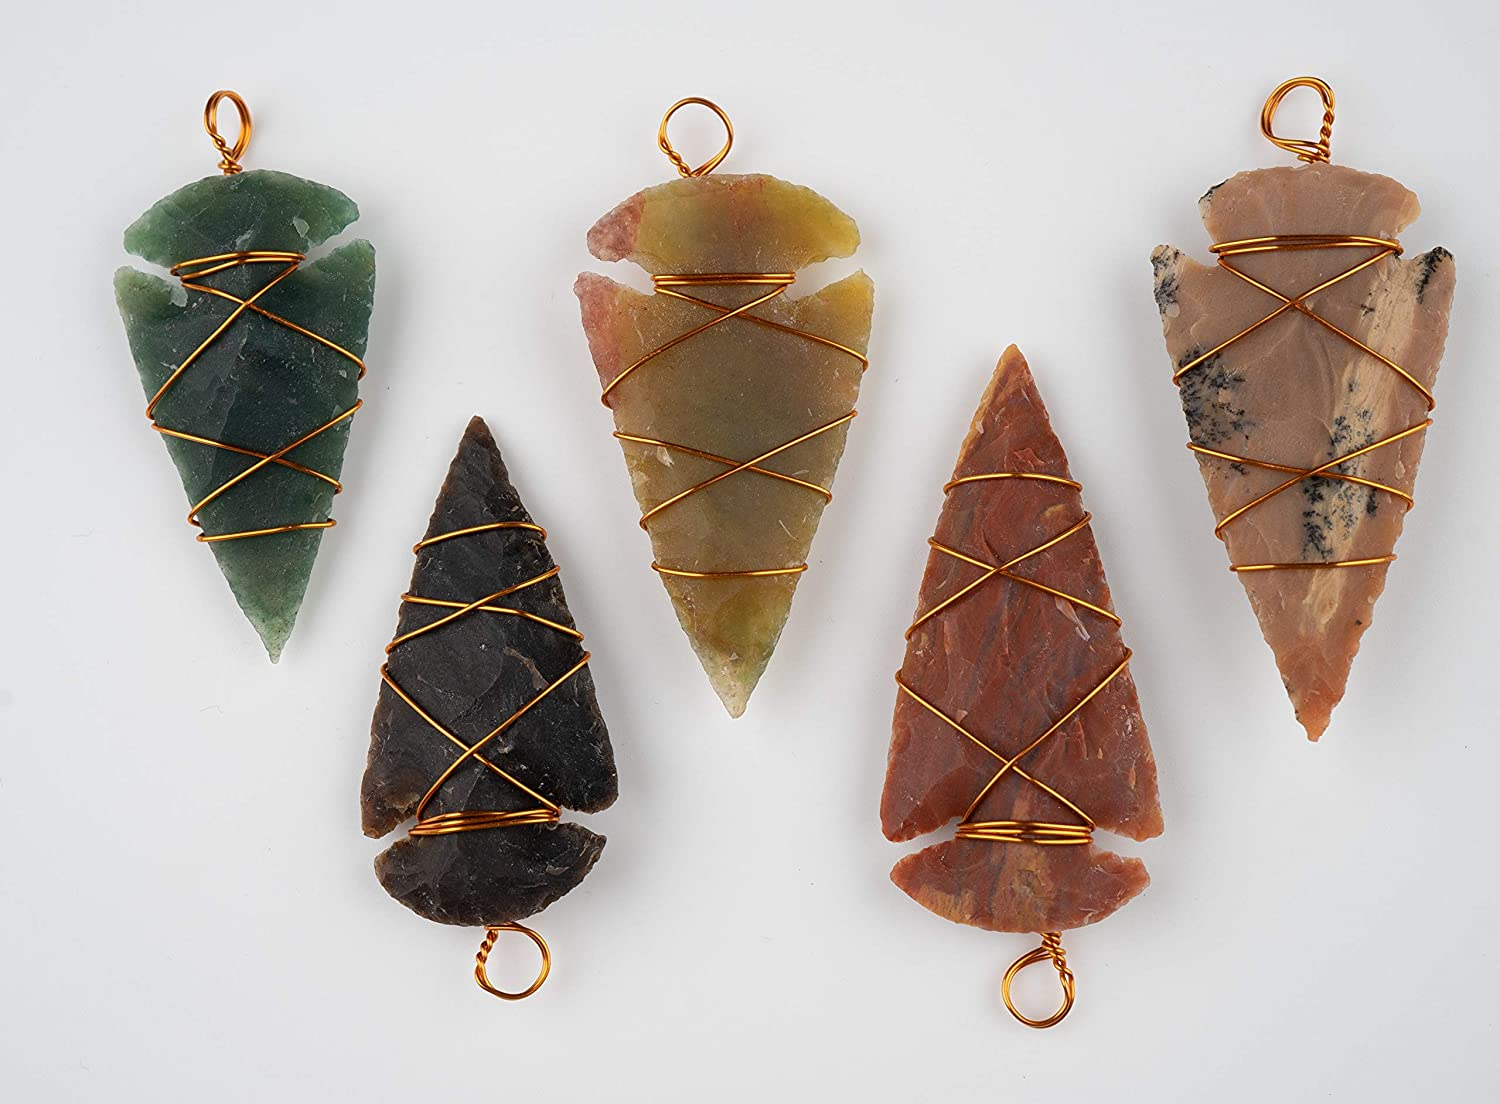 KVK Crystals Stone Arrowhead Pendant Wrapped in Copper Wire 2 inch